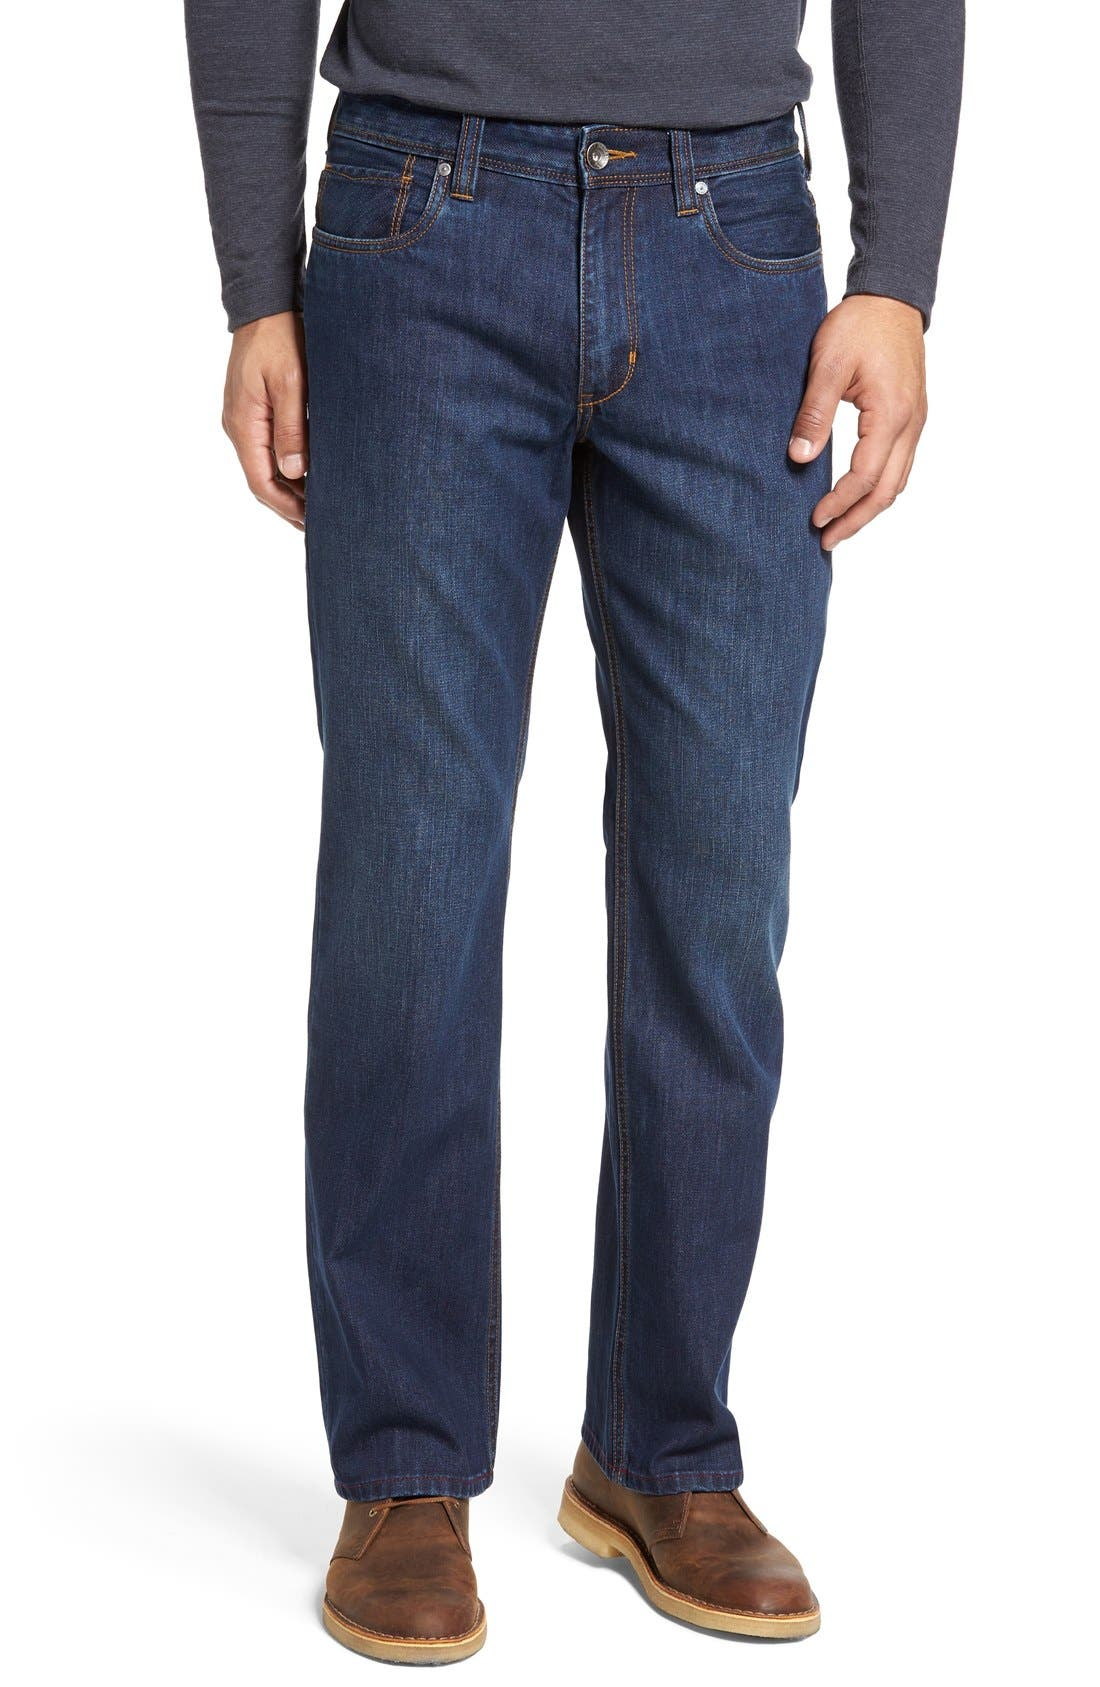 'Santorini' Relaxed Fit Jeans,                         Main,                         color, Dark Indigo Wash